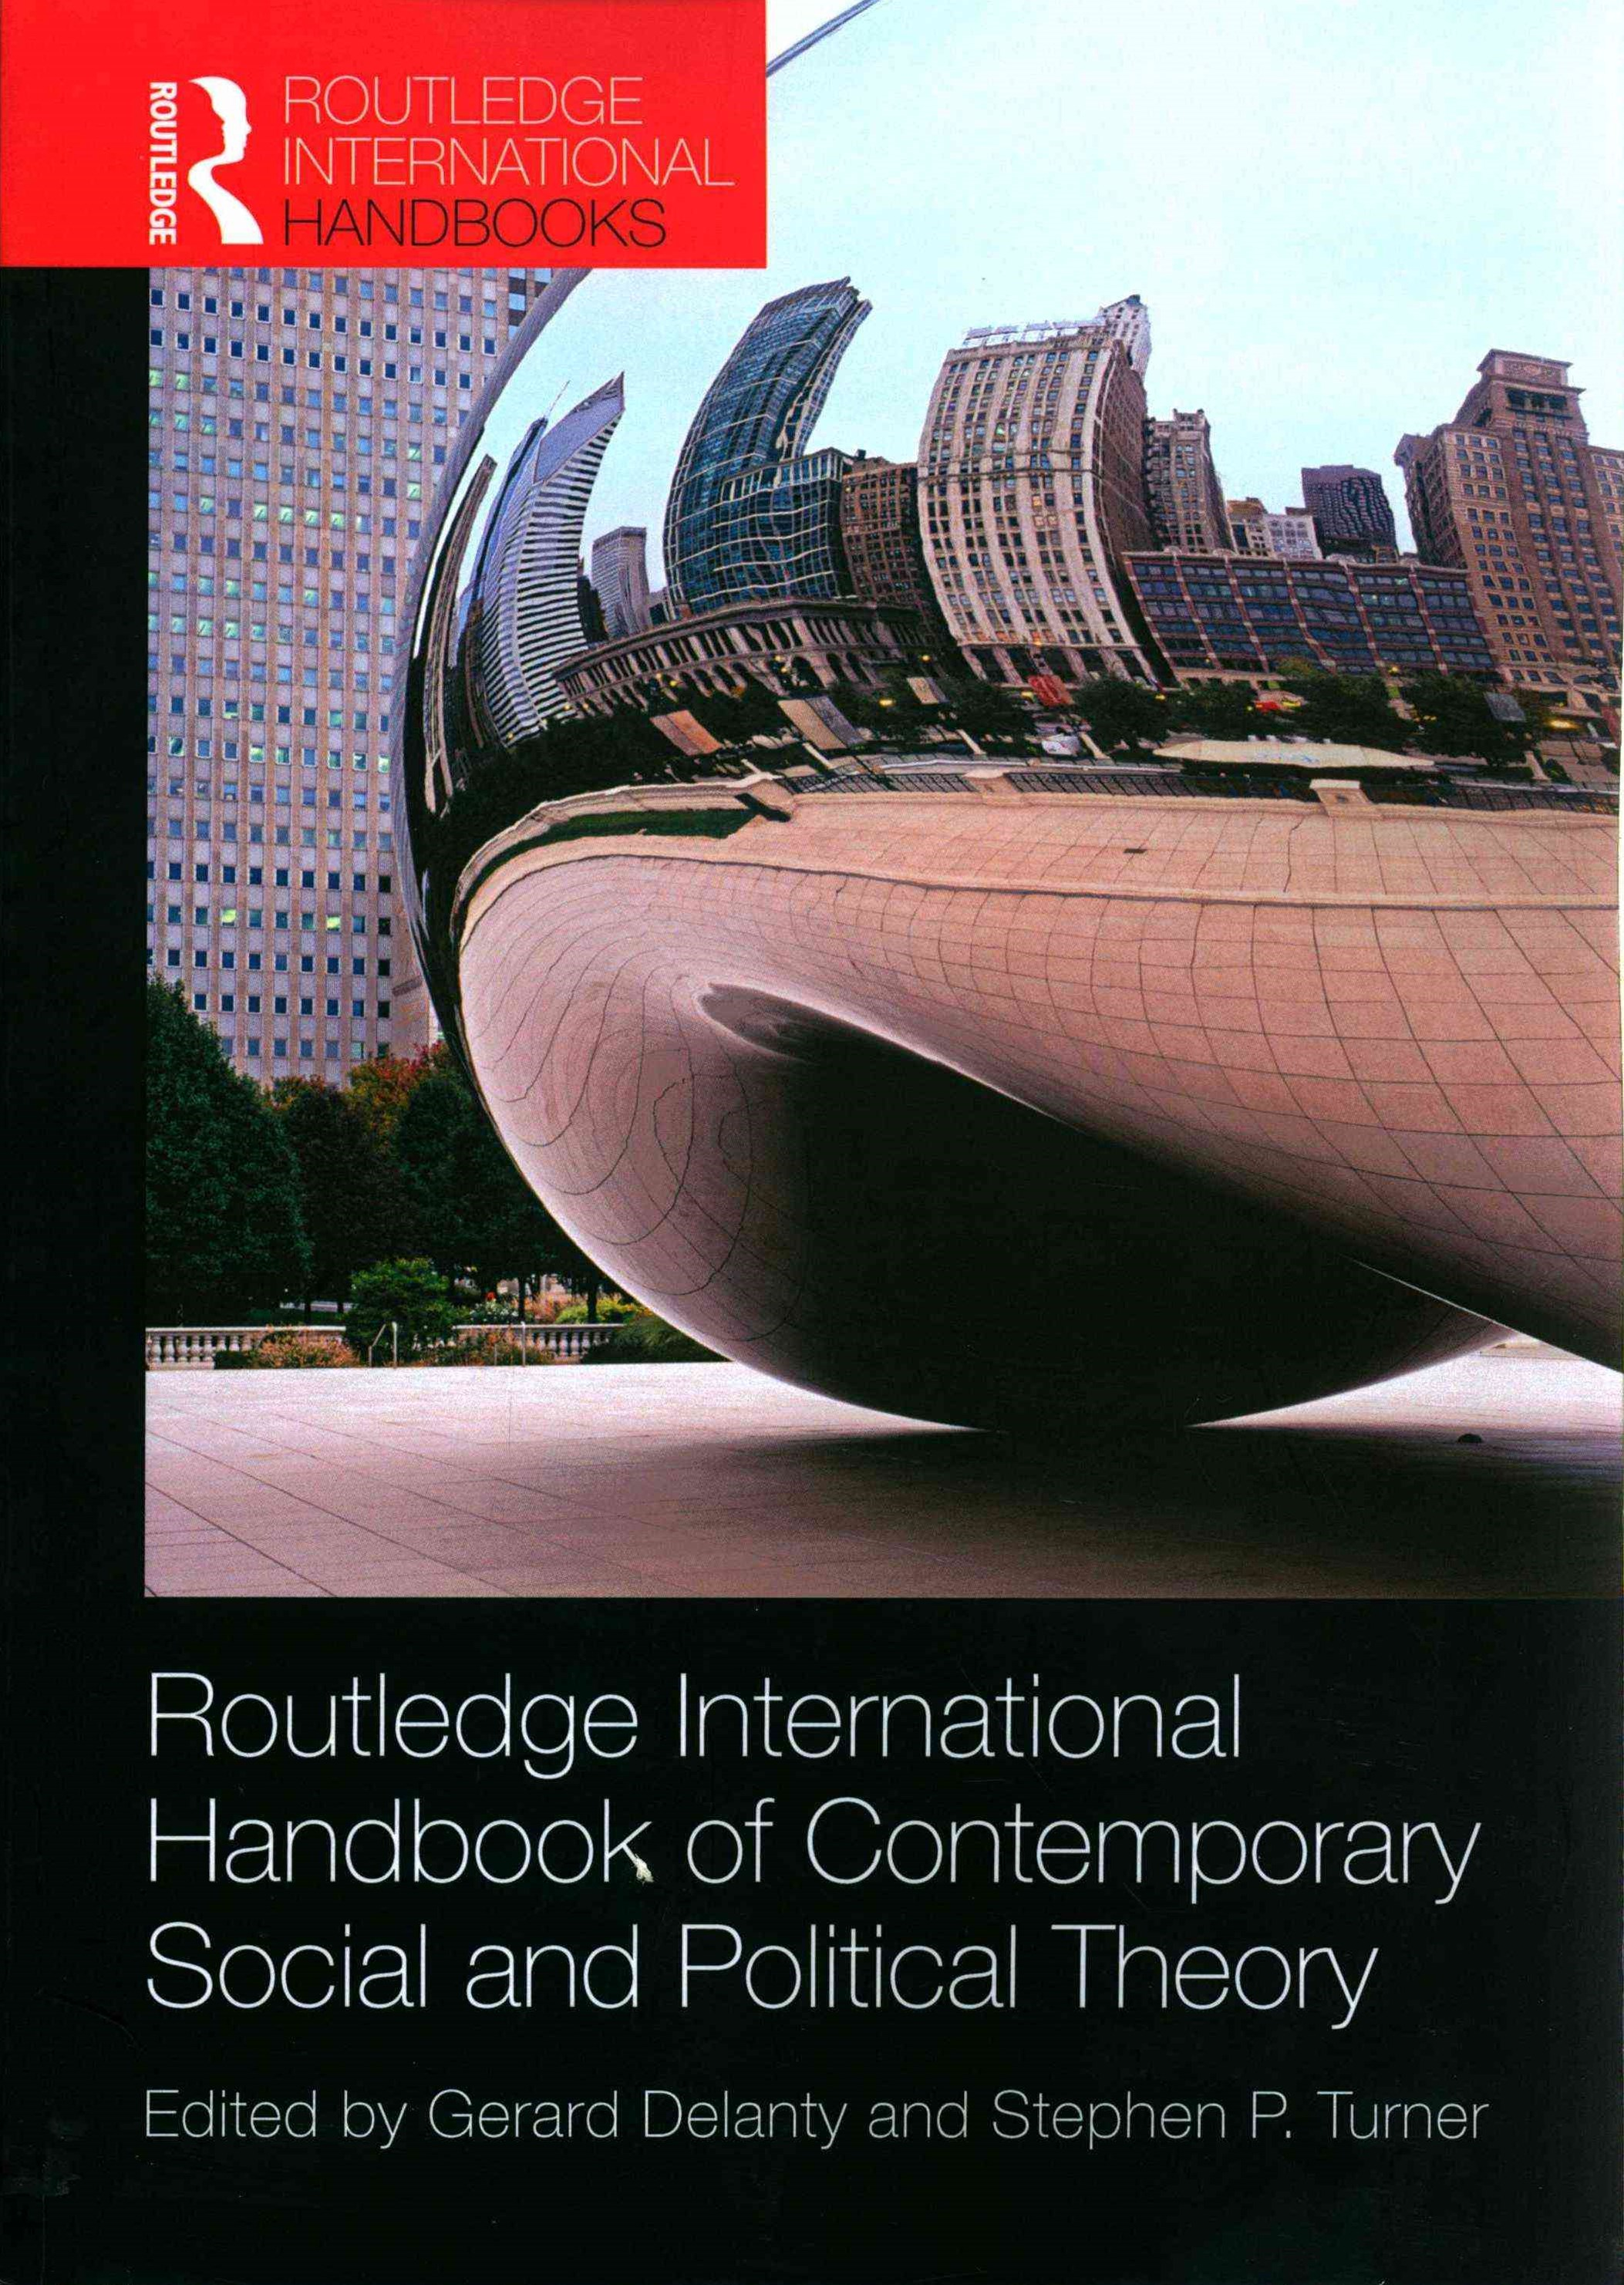 Routledge International Handbook of Contemporary Social and Political Theory